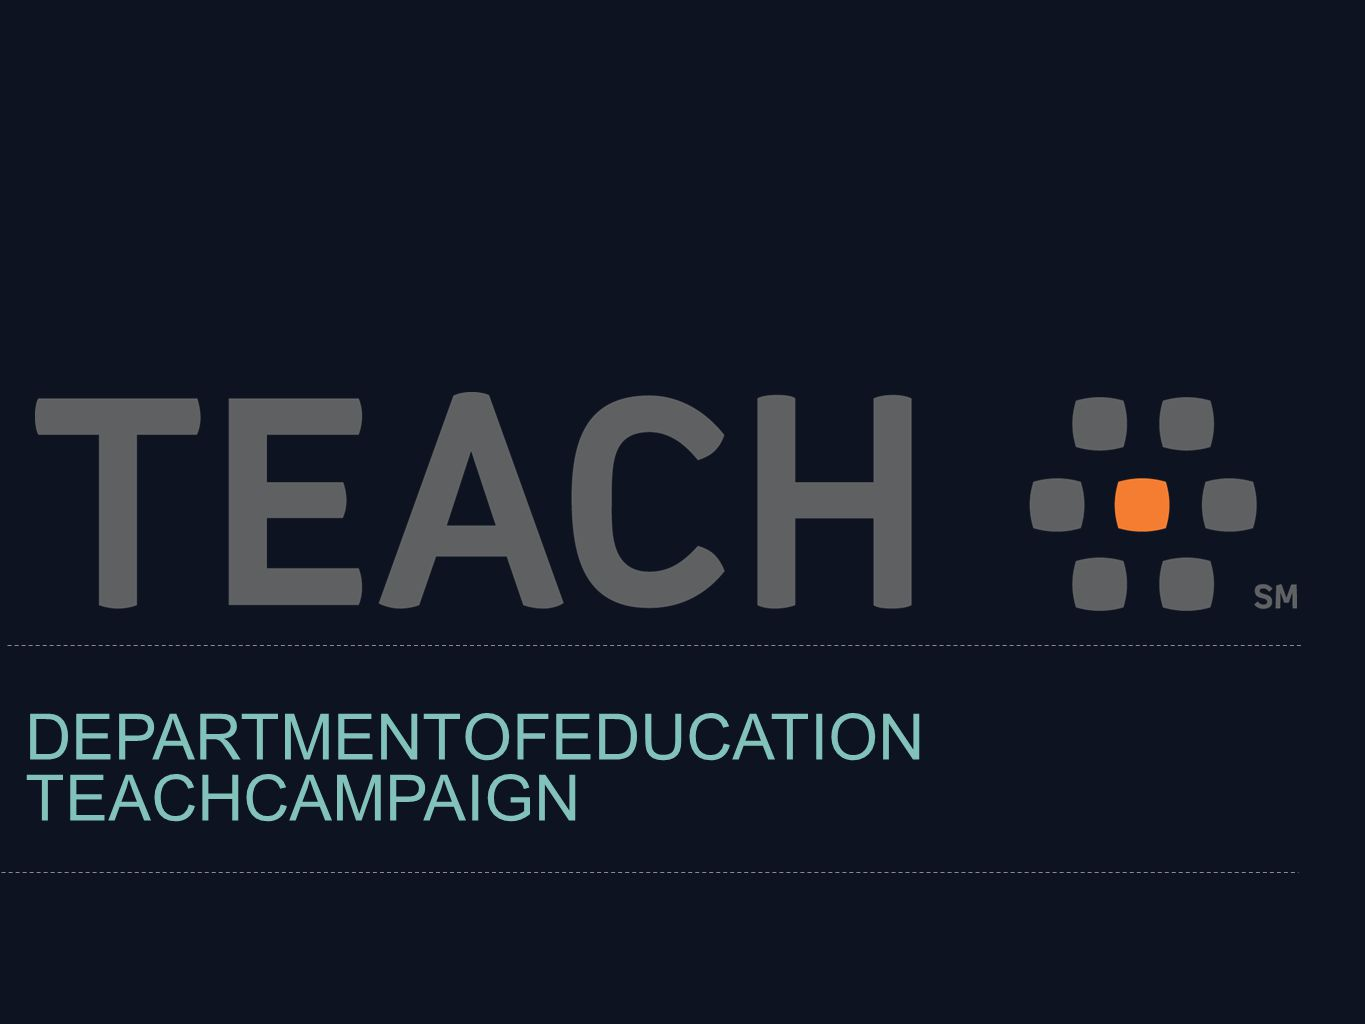 To inspire and empower the most talented and dedicated Americans to become teachers